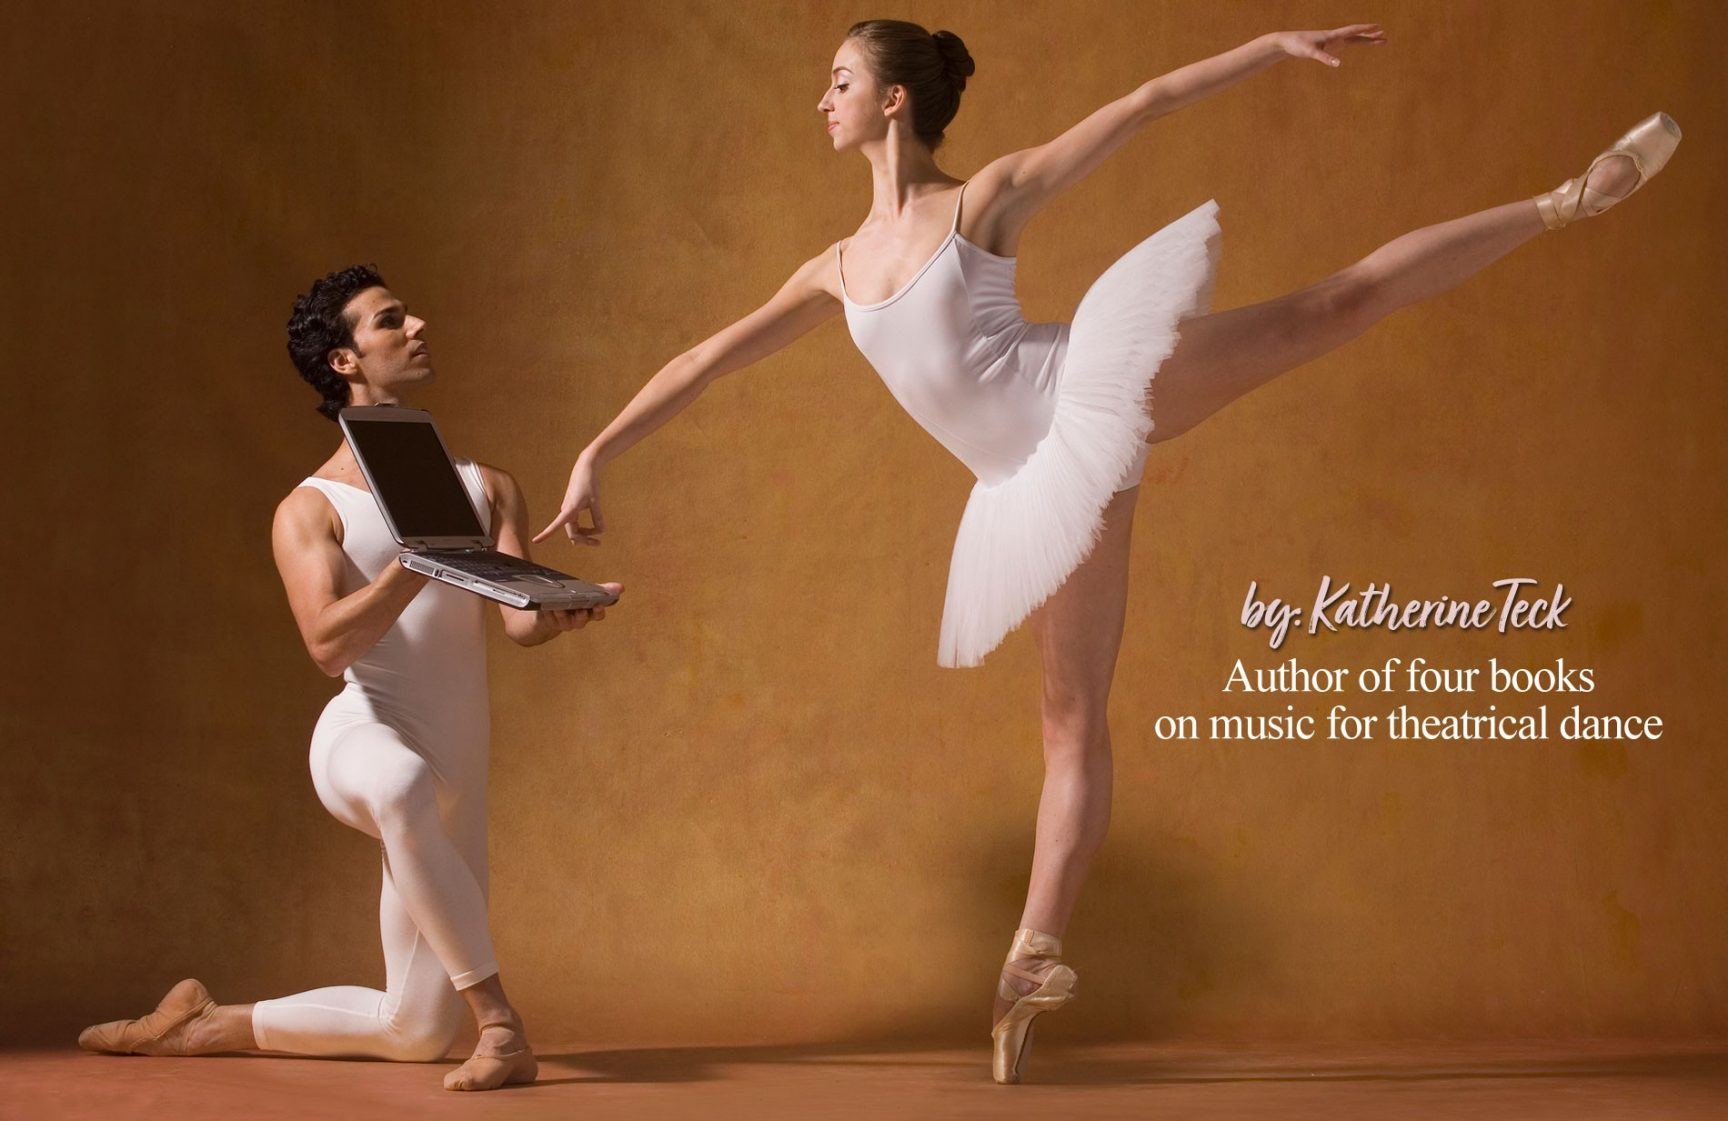 Appreciating Ballet's Music - by Katherine Teck